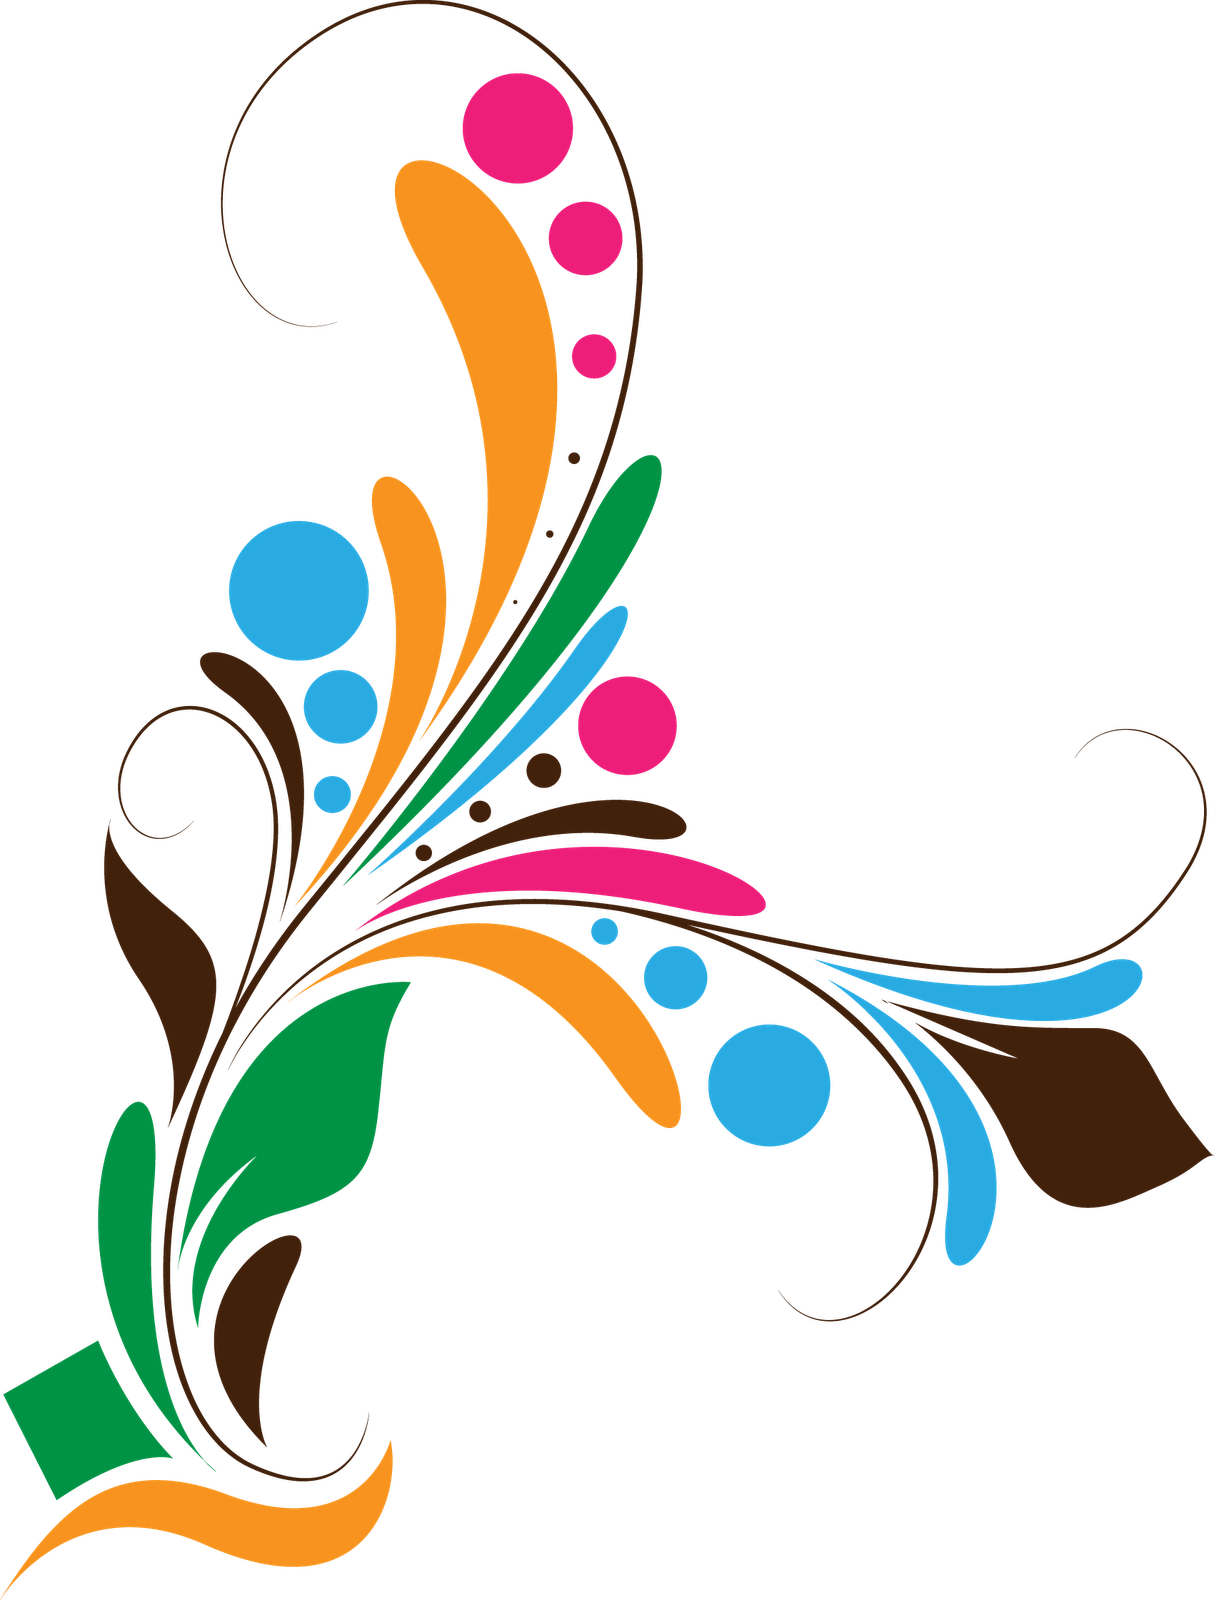 vector stock Floral design png backgrounds. Vector defintion graphic designer